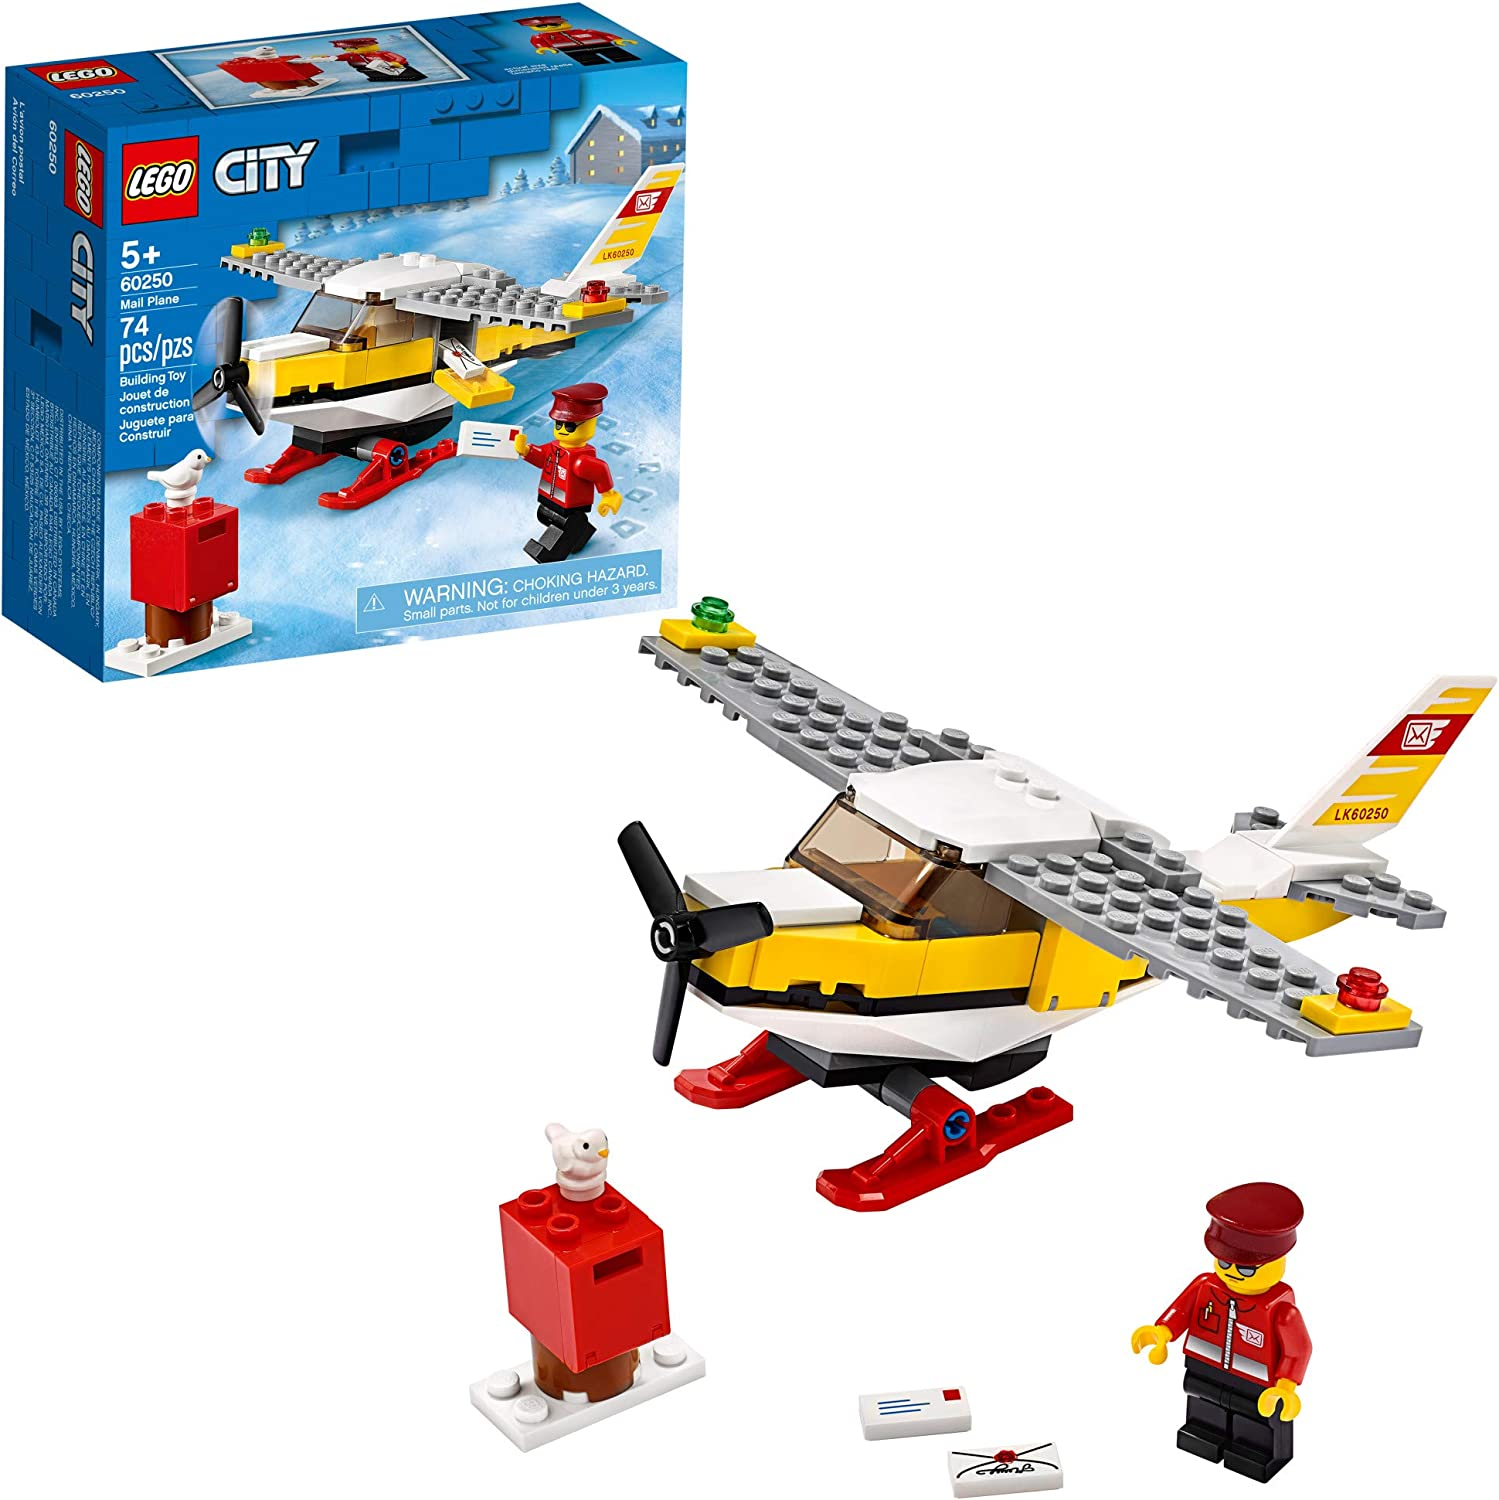 LEGO City Mail Plane 60250 Pretend-Play Toy, Fun Building Set for Kids, New 2020 (74 Pieces)